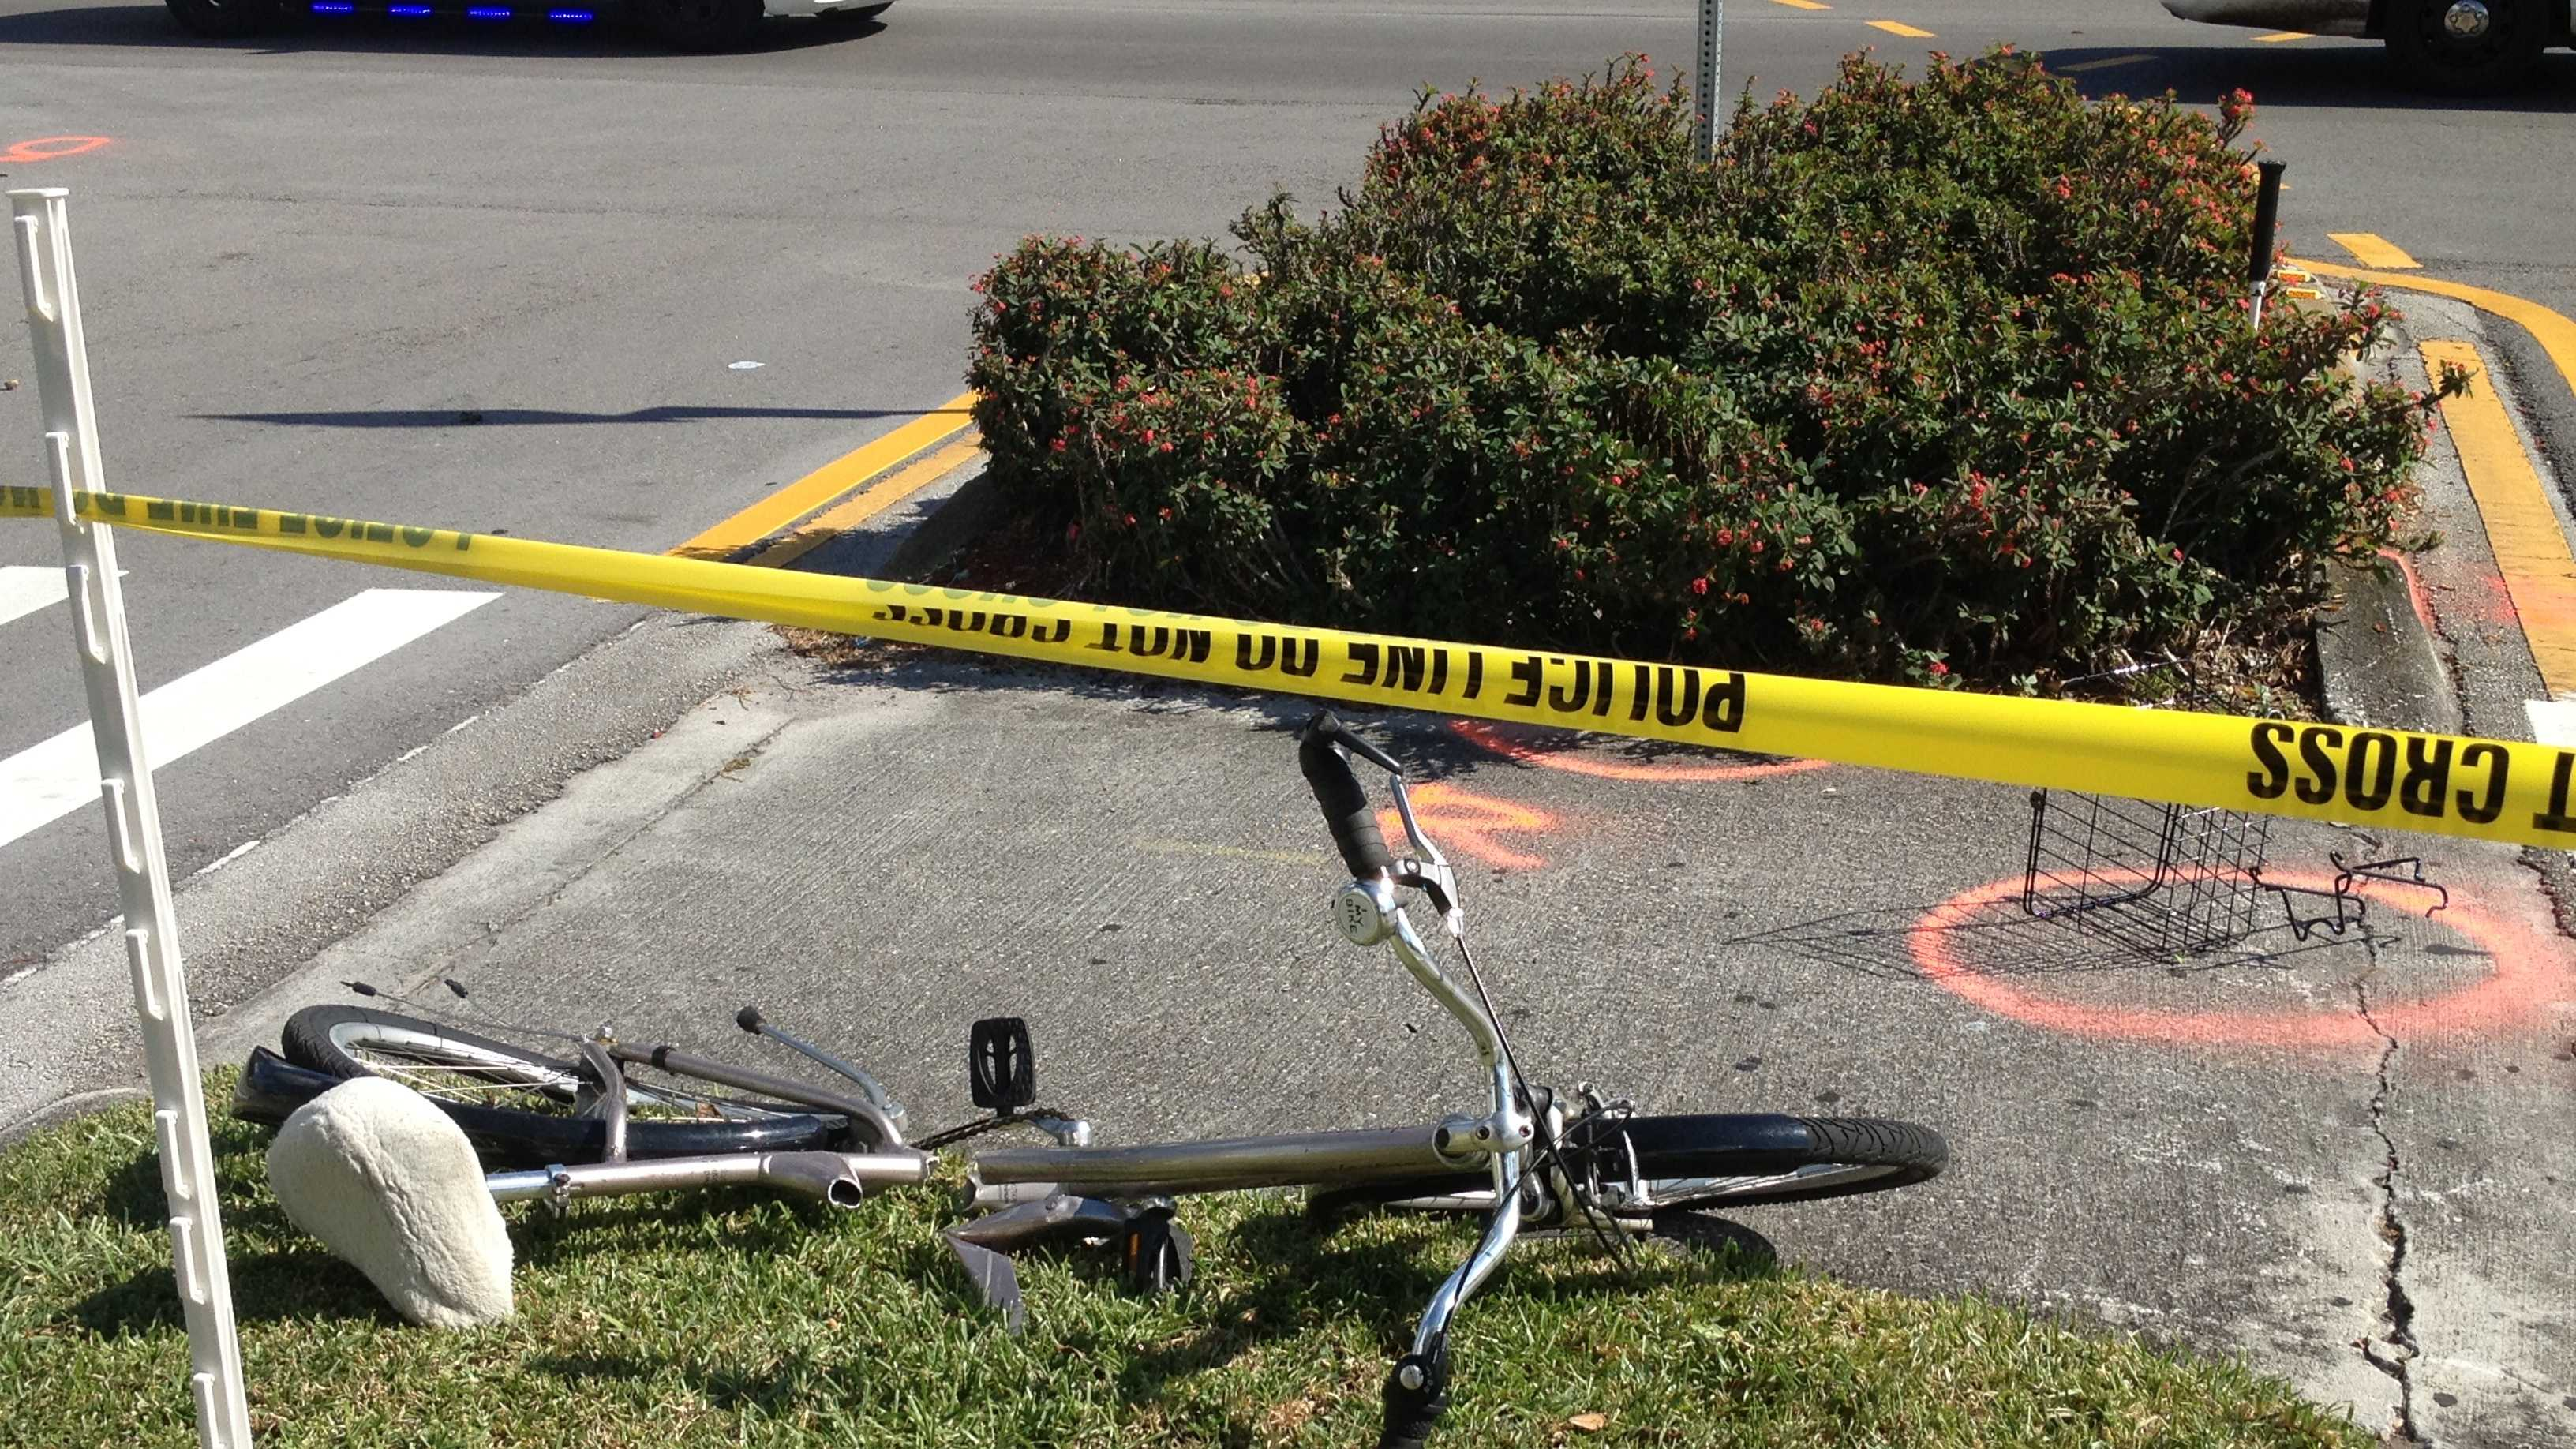 86-year-old man struck by car while riding bike